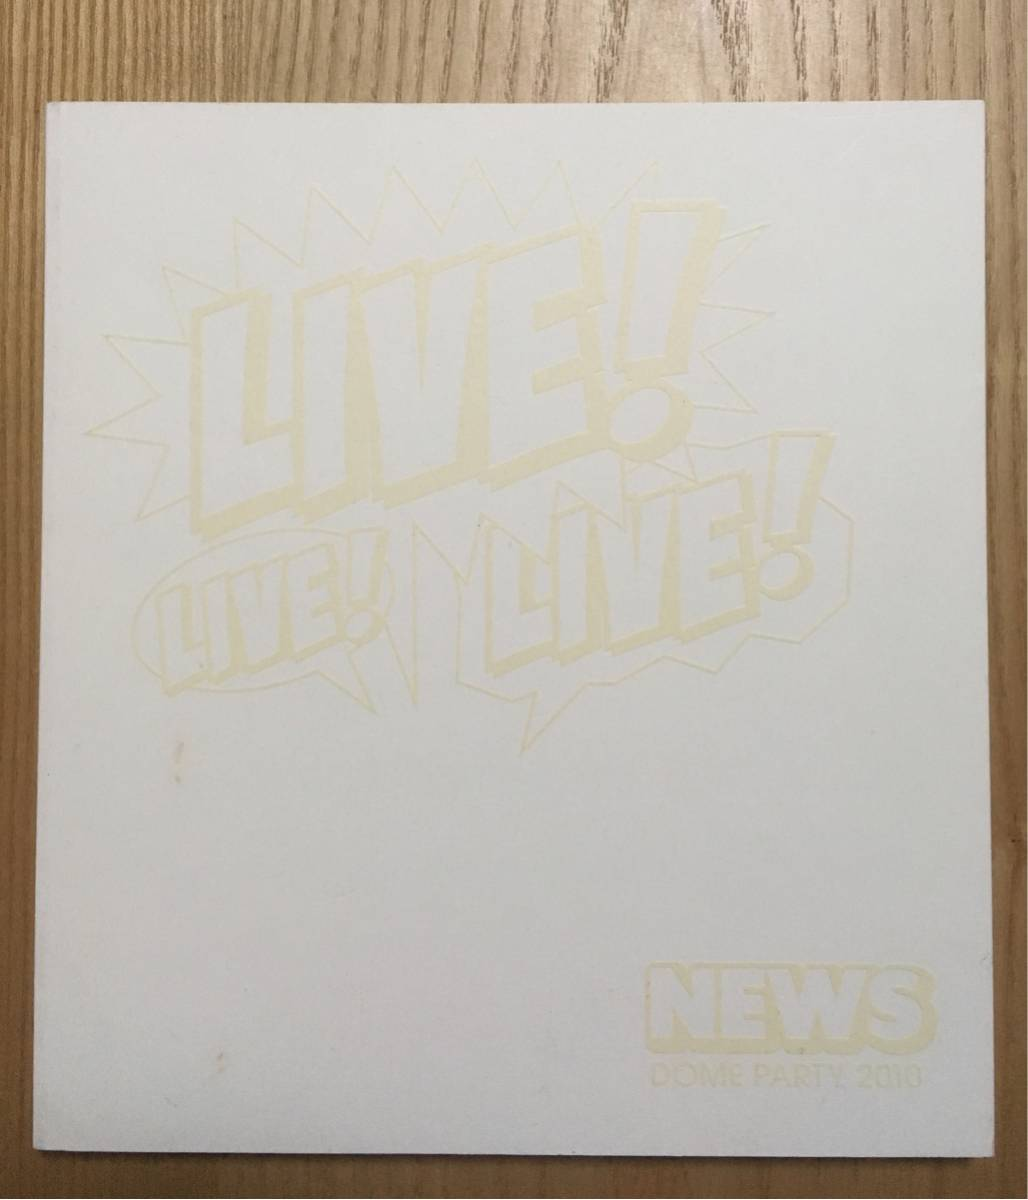 ★NEWS パンフレット★ NEWS DOME PARTY 2010 LIVE LIVE LIVE